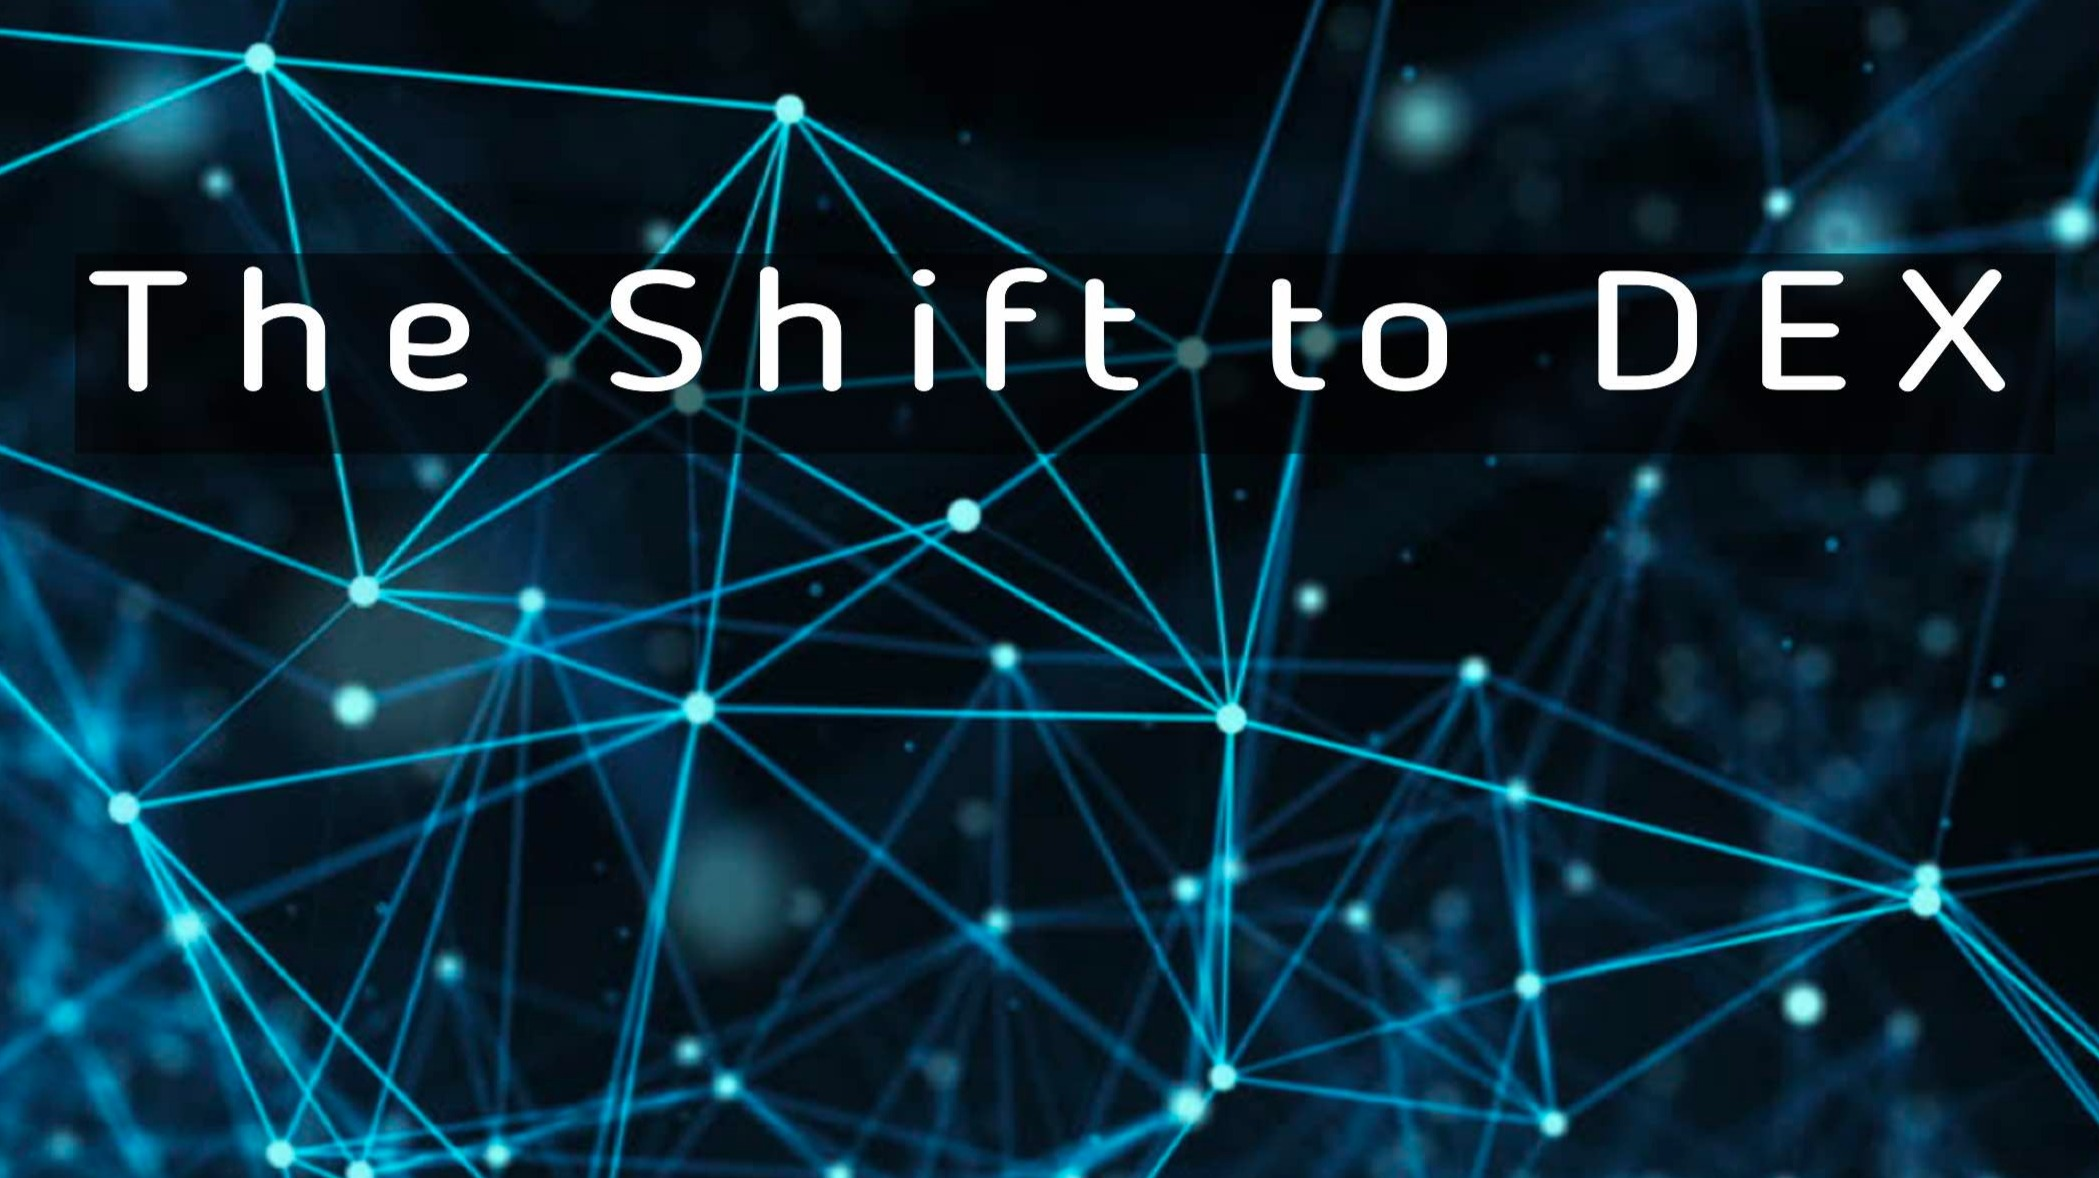 The Shift to DEX is just beginning, according to SaTT CEO